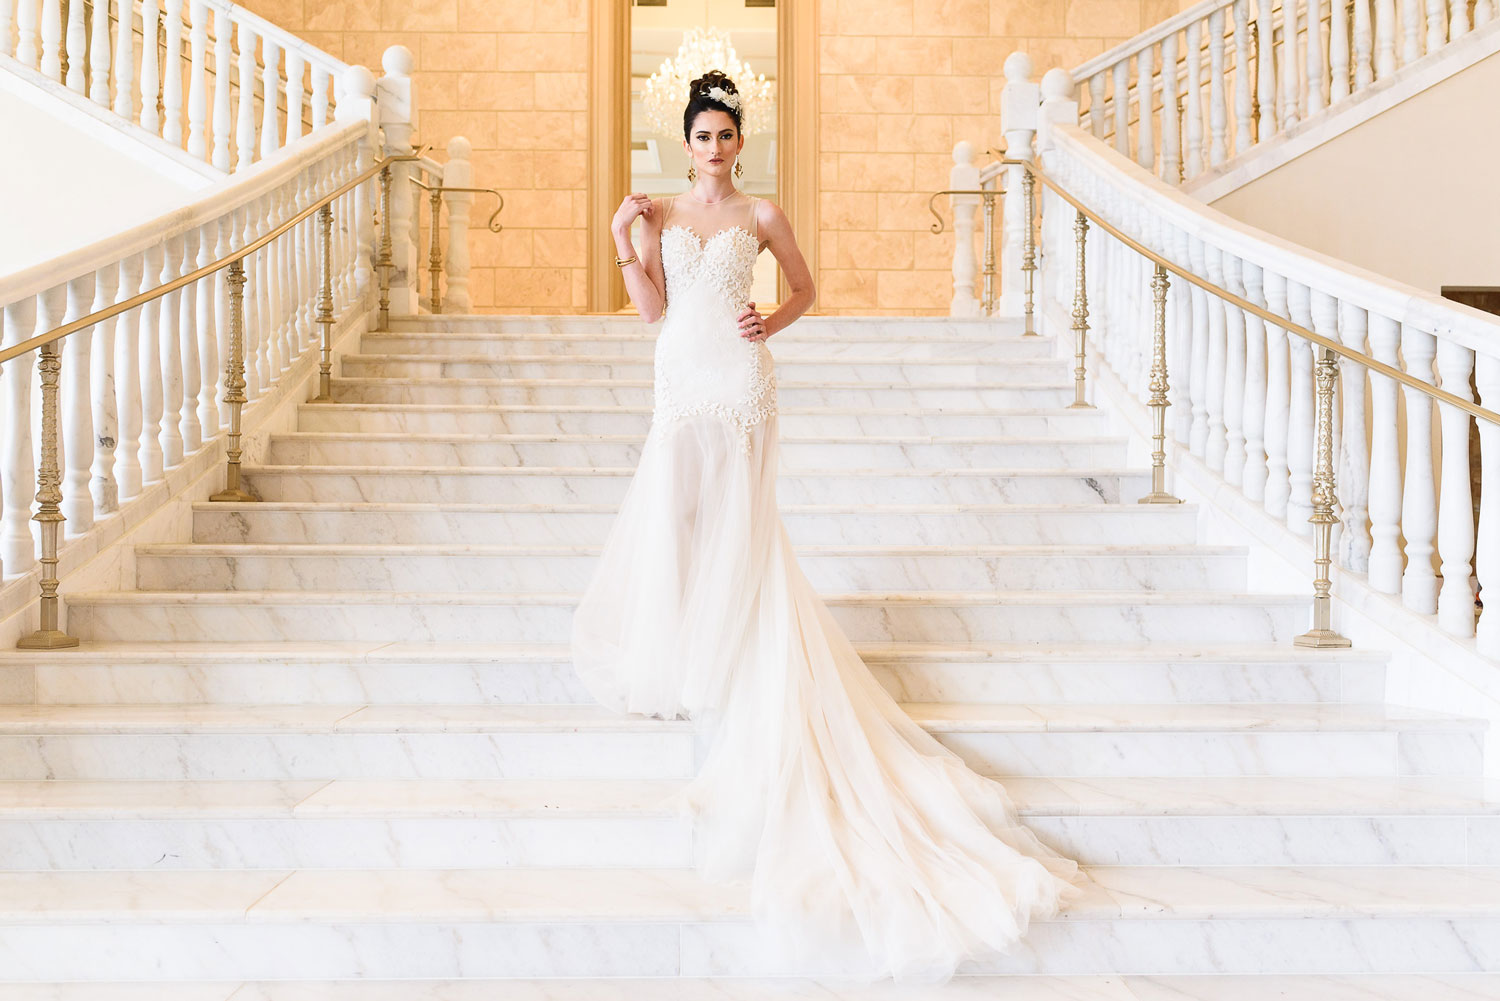 Bride on stairway article about avoiding bridal scams